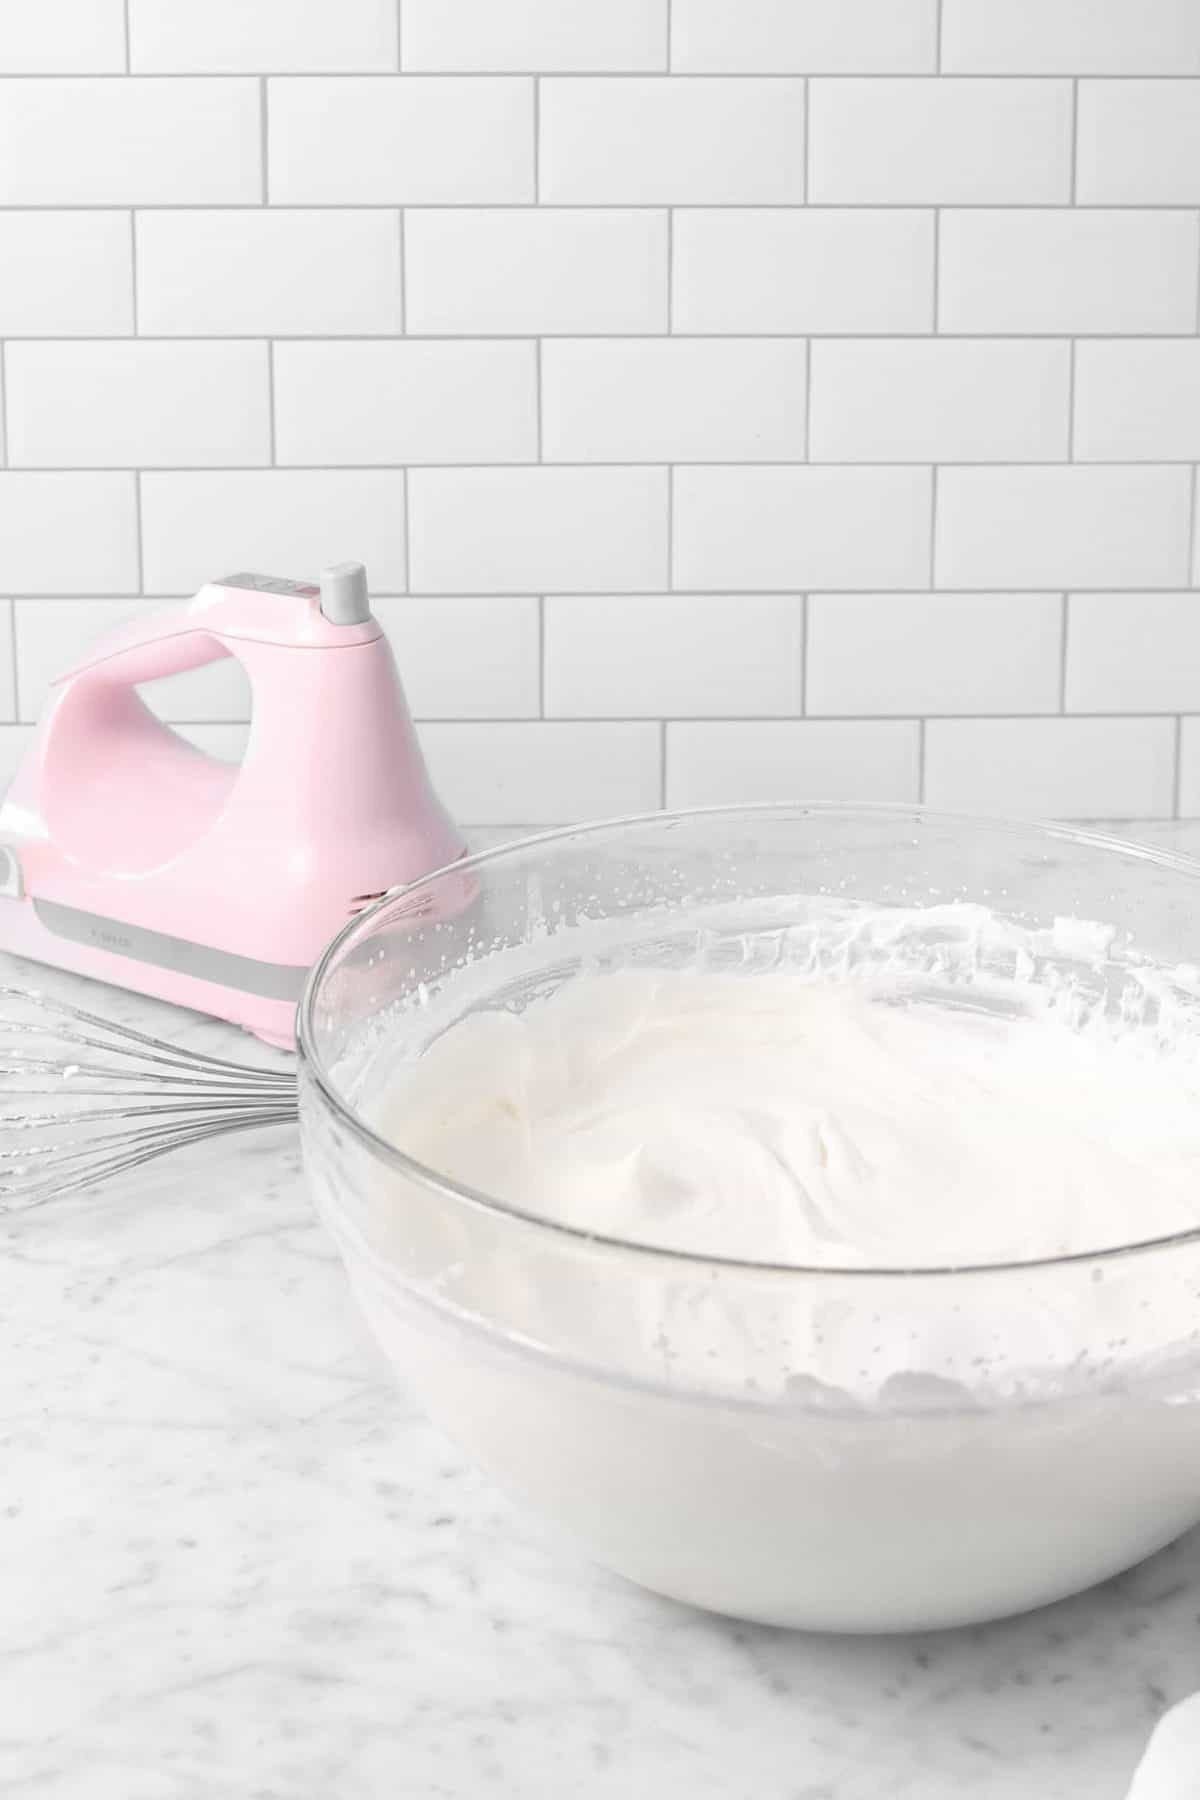 a bowl full of chantilly cream with a pink electric mixer on a marble counter